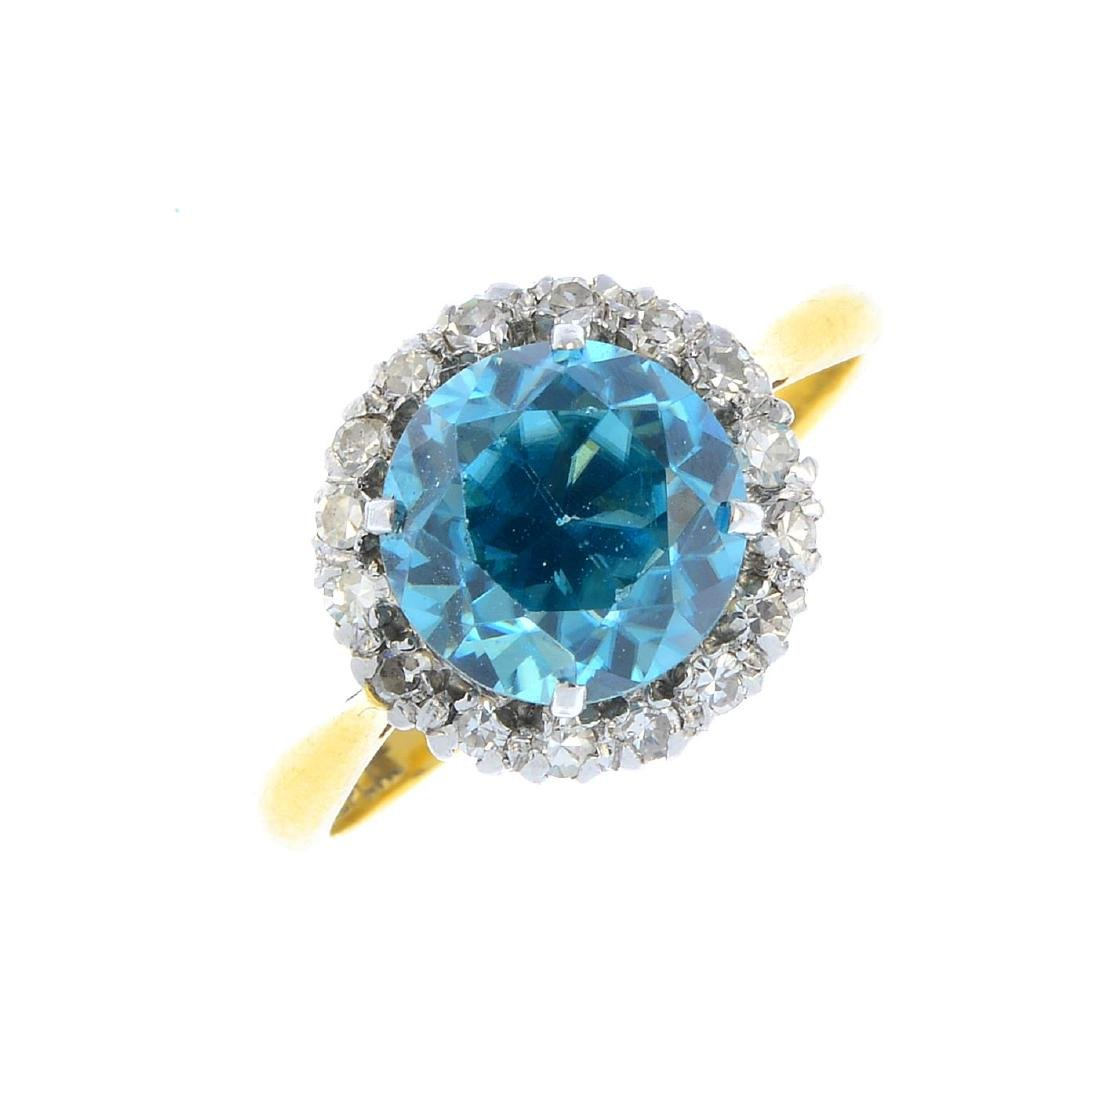 An early 20th century 18ct gold zircon and diamond